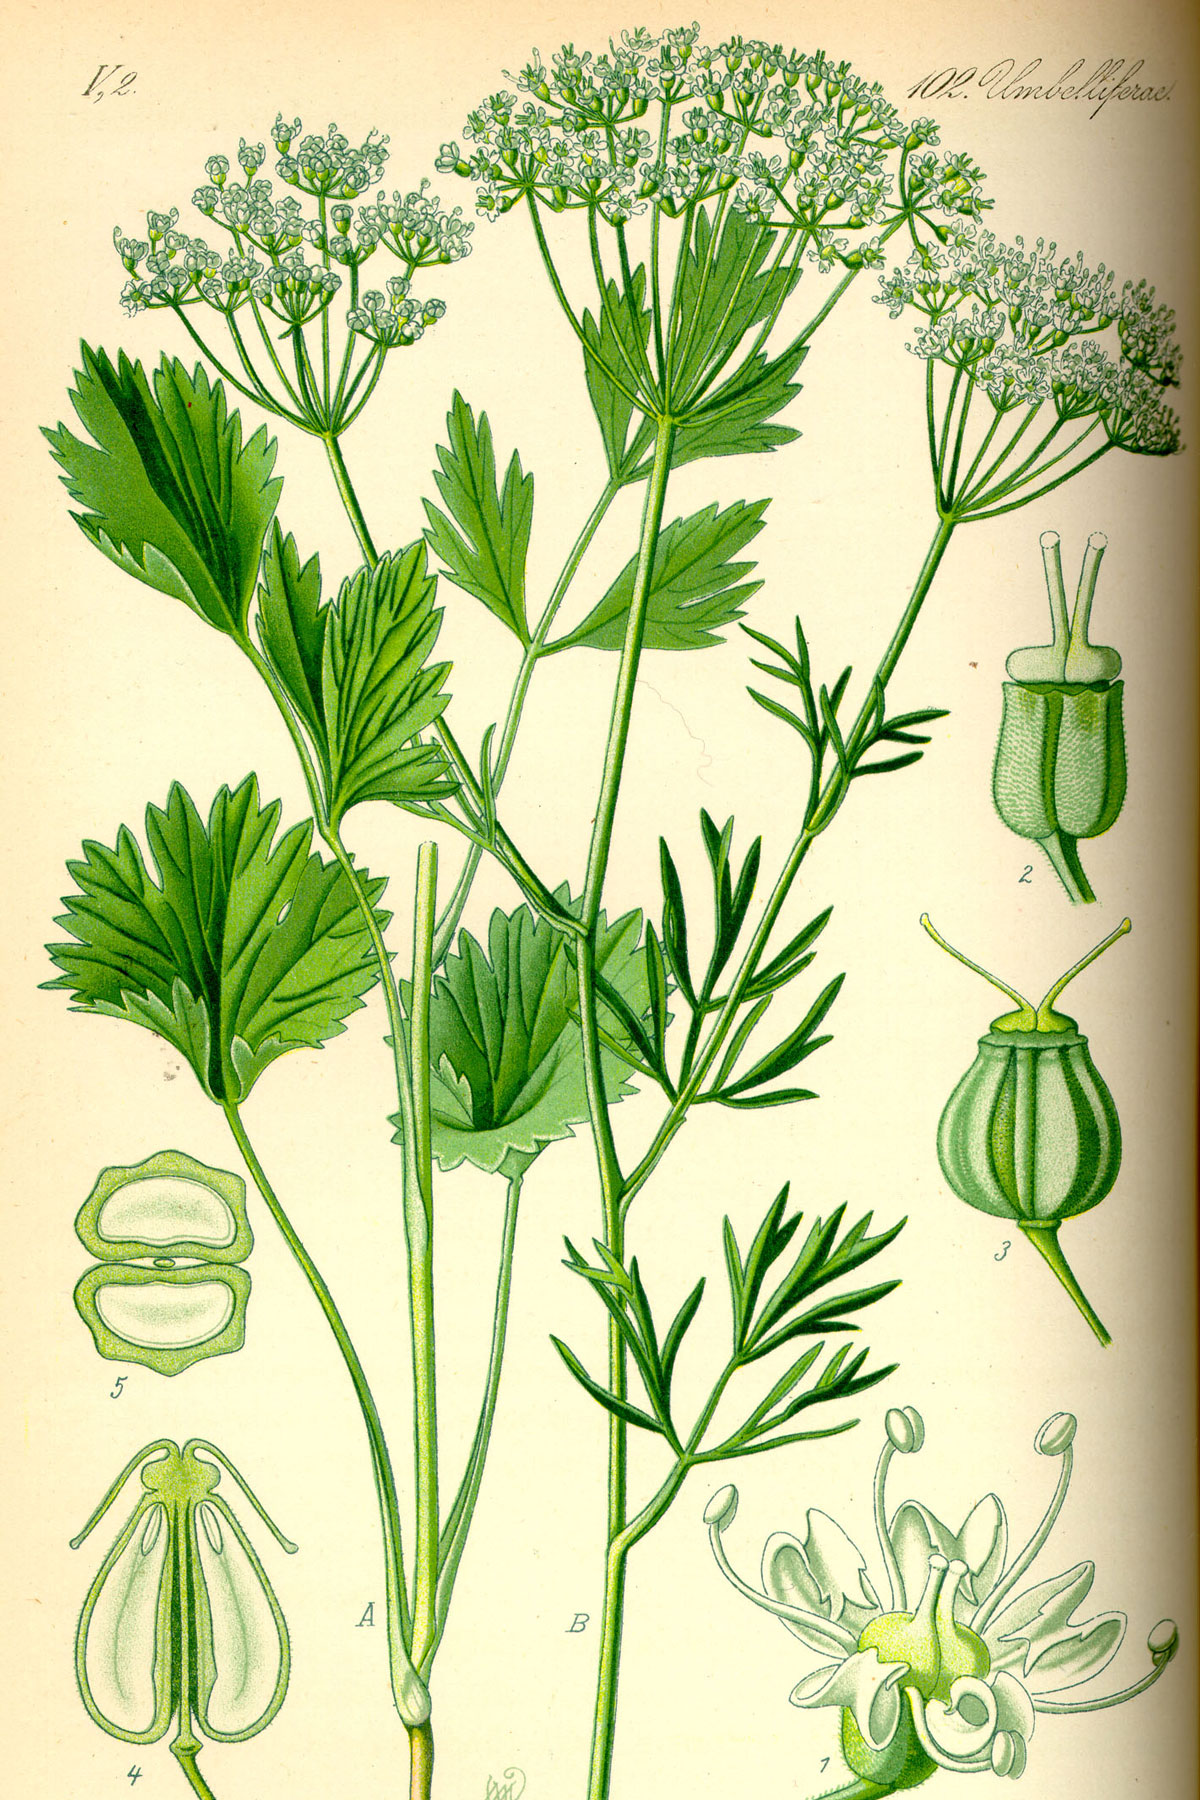 An illustration of anise